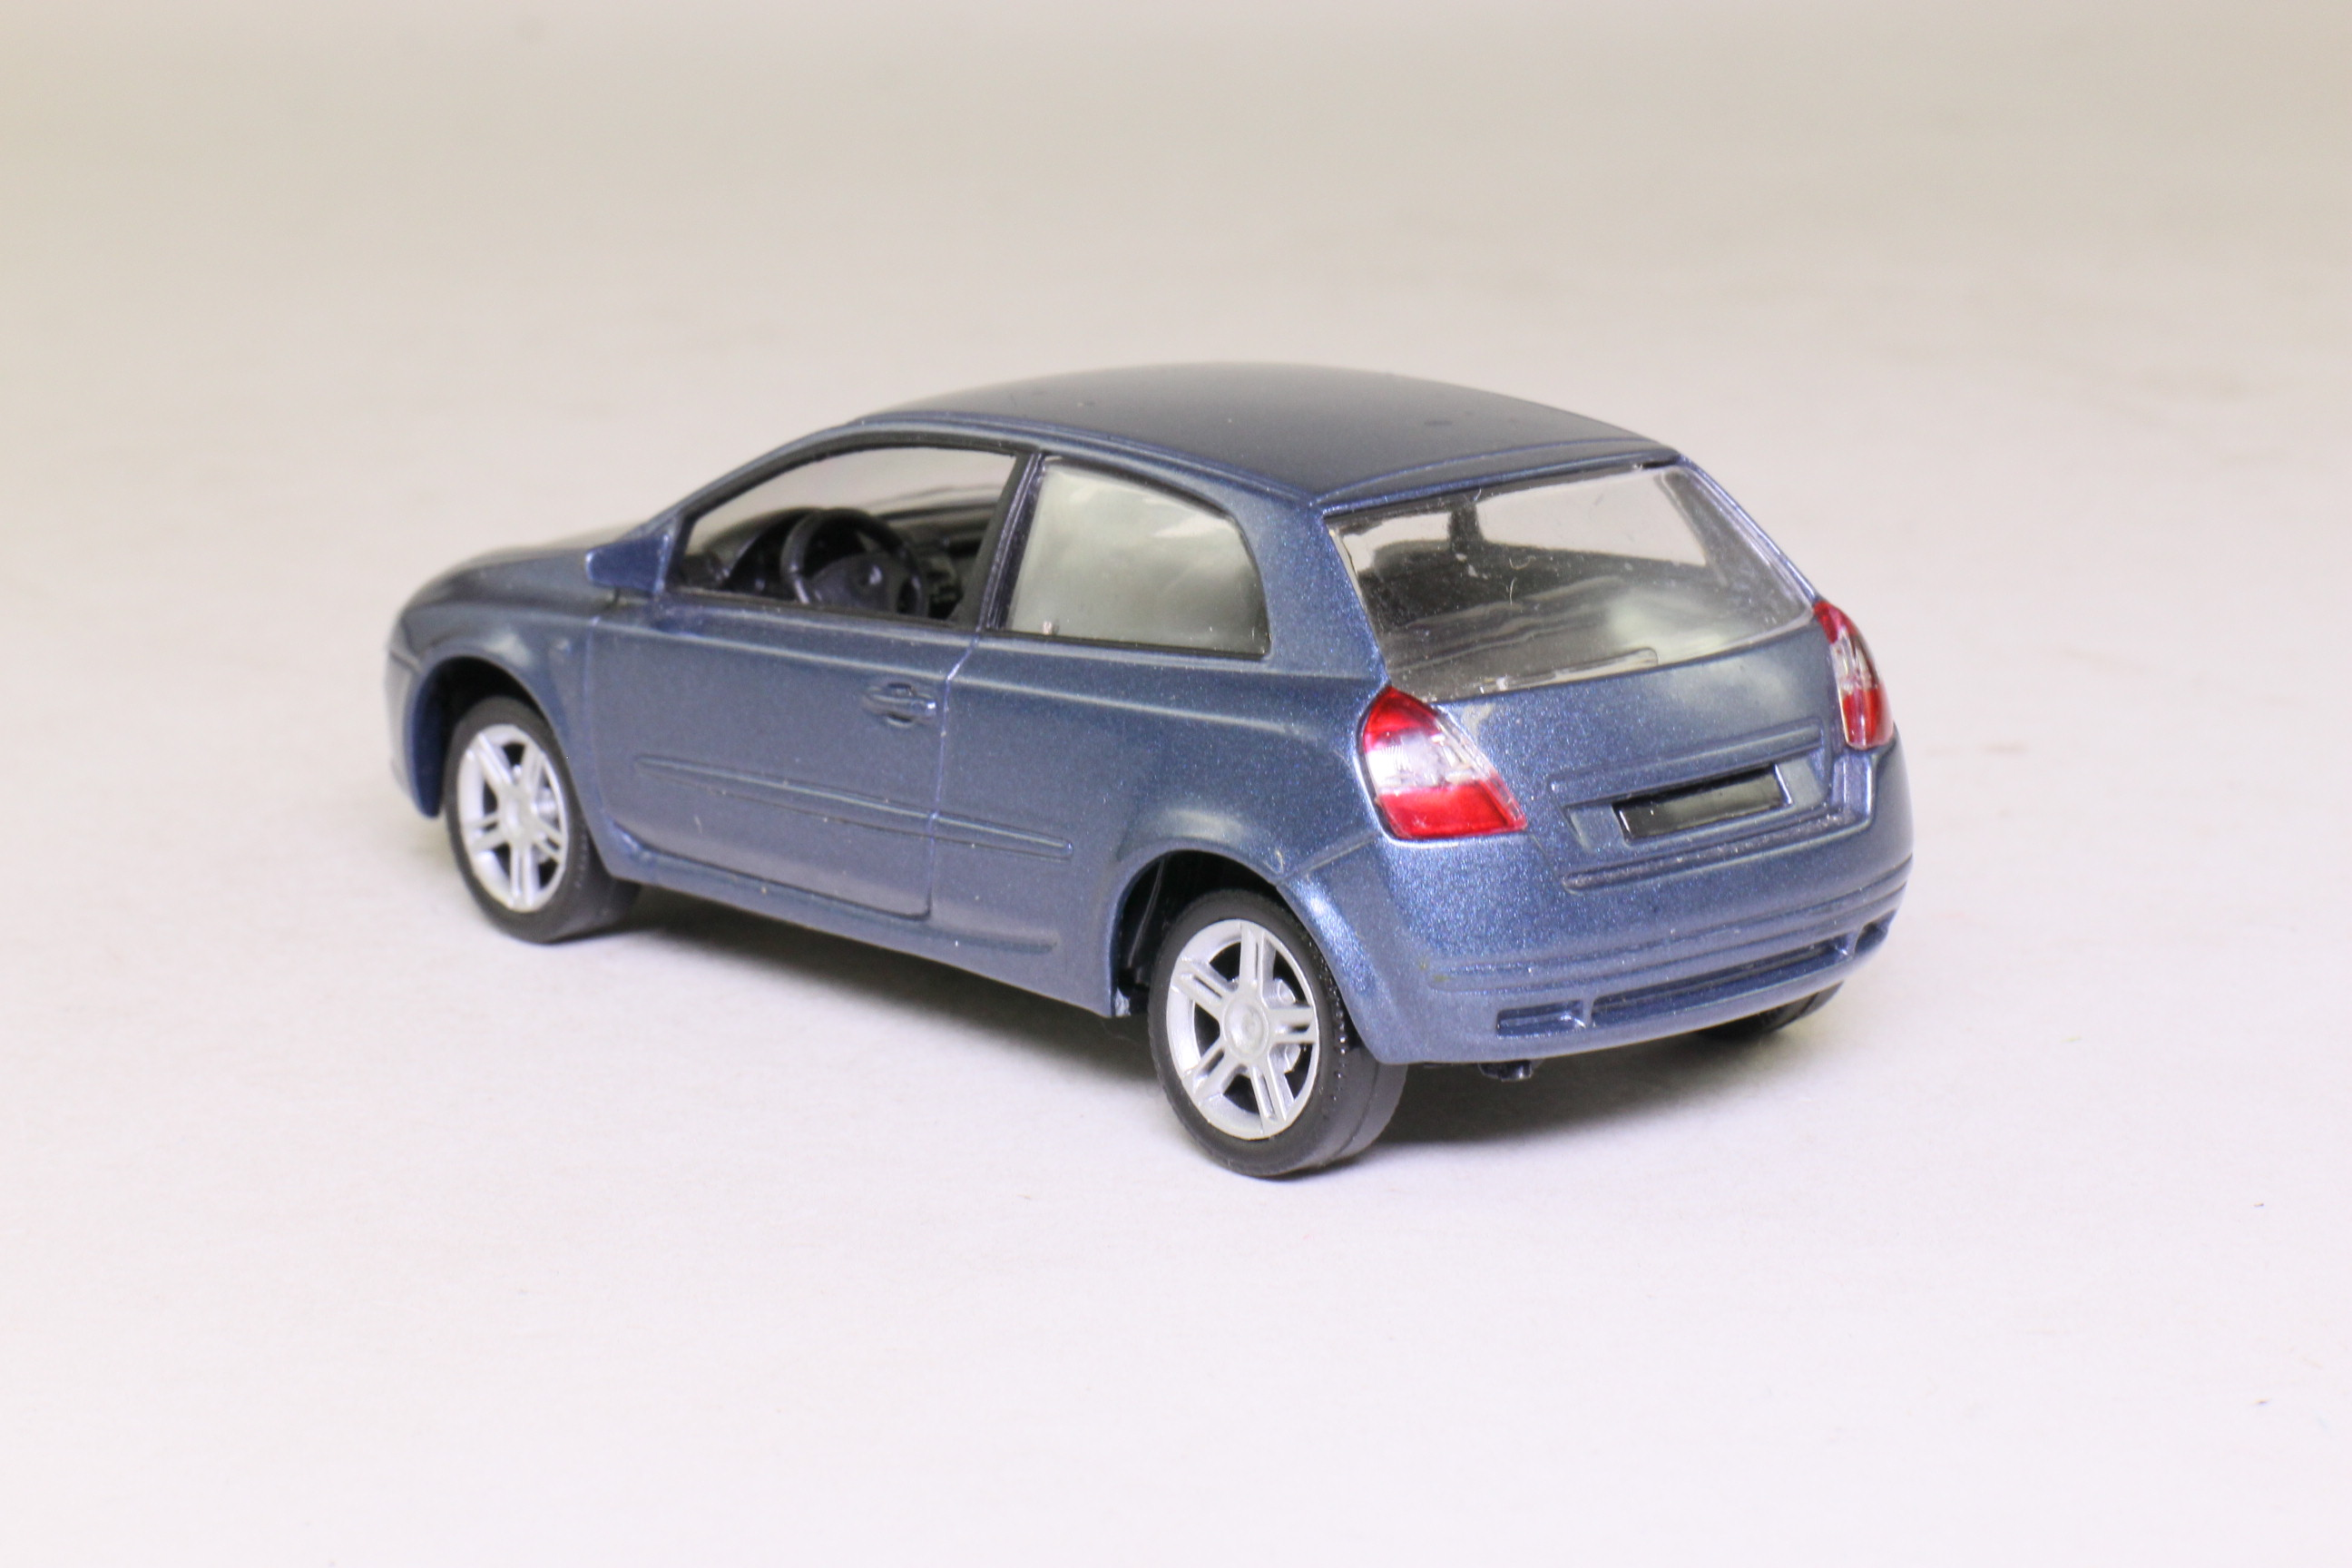 norev 71000 fiat stilo hatchback blue metallic 1 43 scale excellent boxed ebay. Black Bedroom Furniture Sets. Home Design Ideas